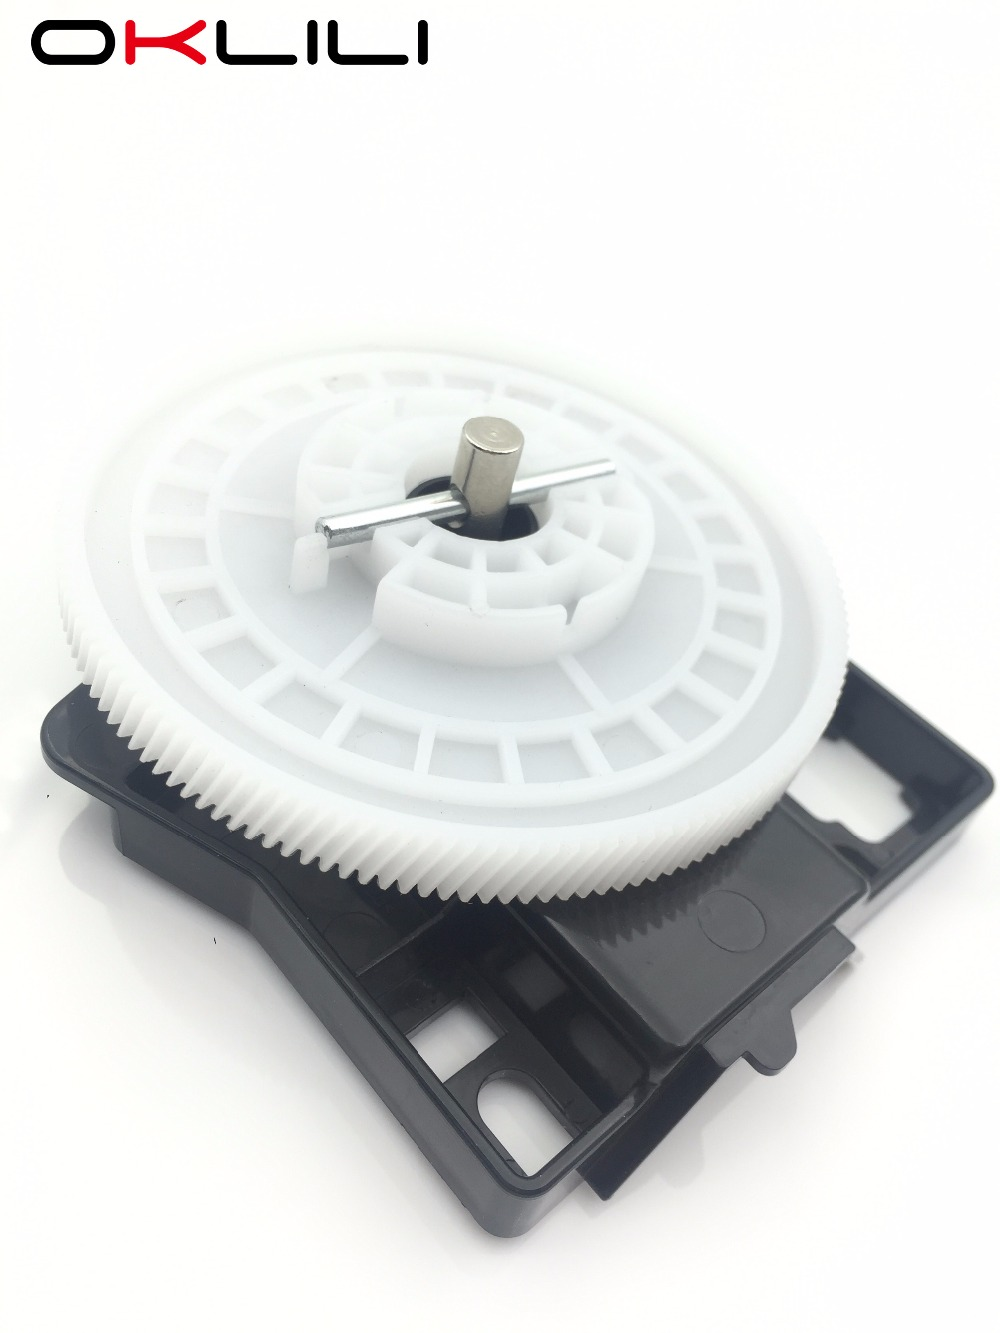 NEW RC3-2497 RC3-2497-000 Toner Drive Assy cover GEAR SUPPORT FRAME Cartridge Drive Gear assy for HP Pro 400 M401 M425 M475 M451 кольца кюз дельта 112902 d